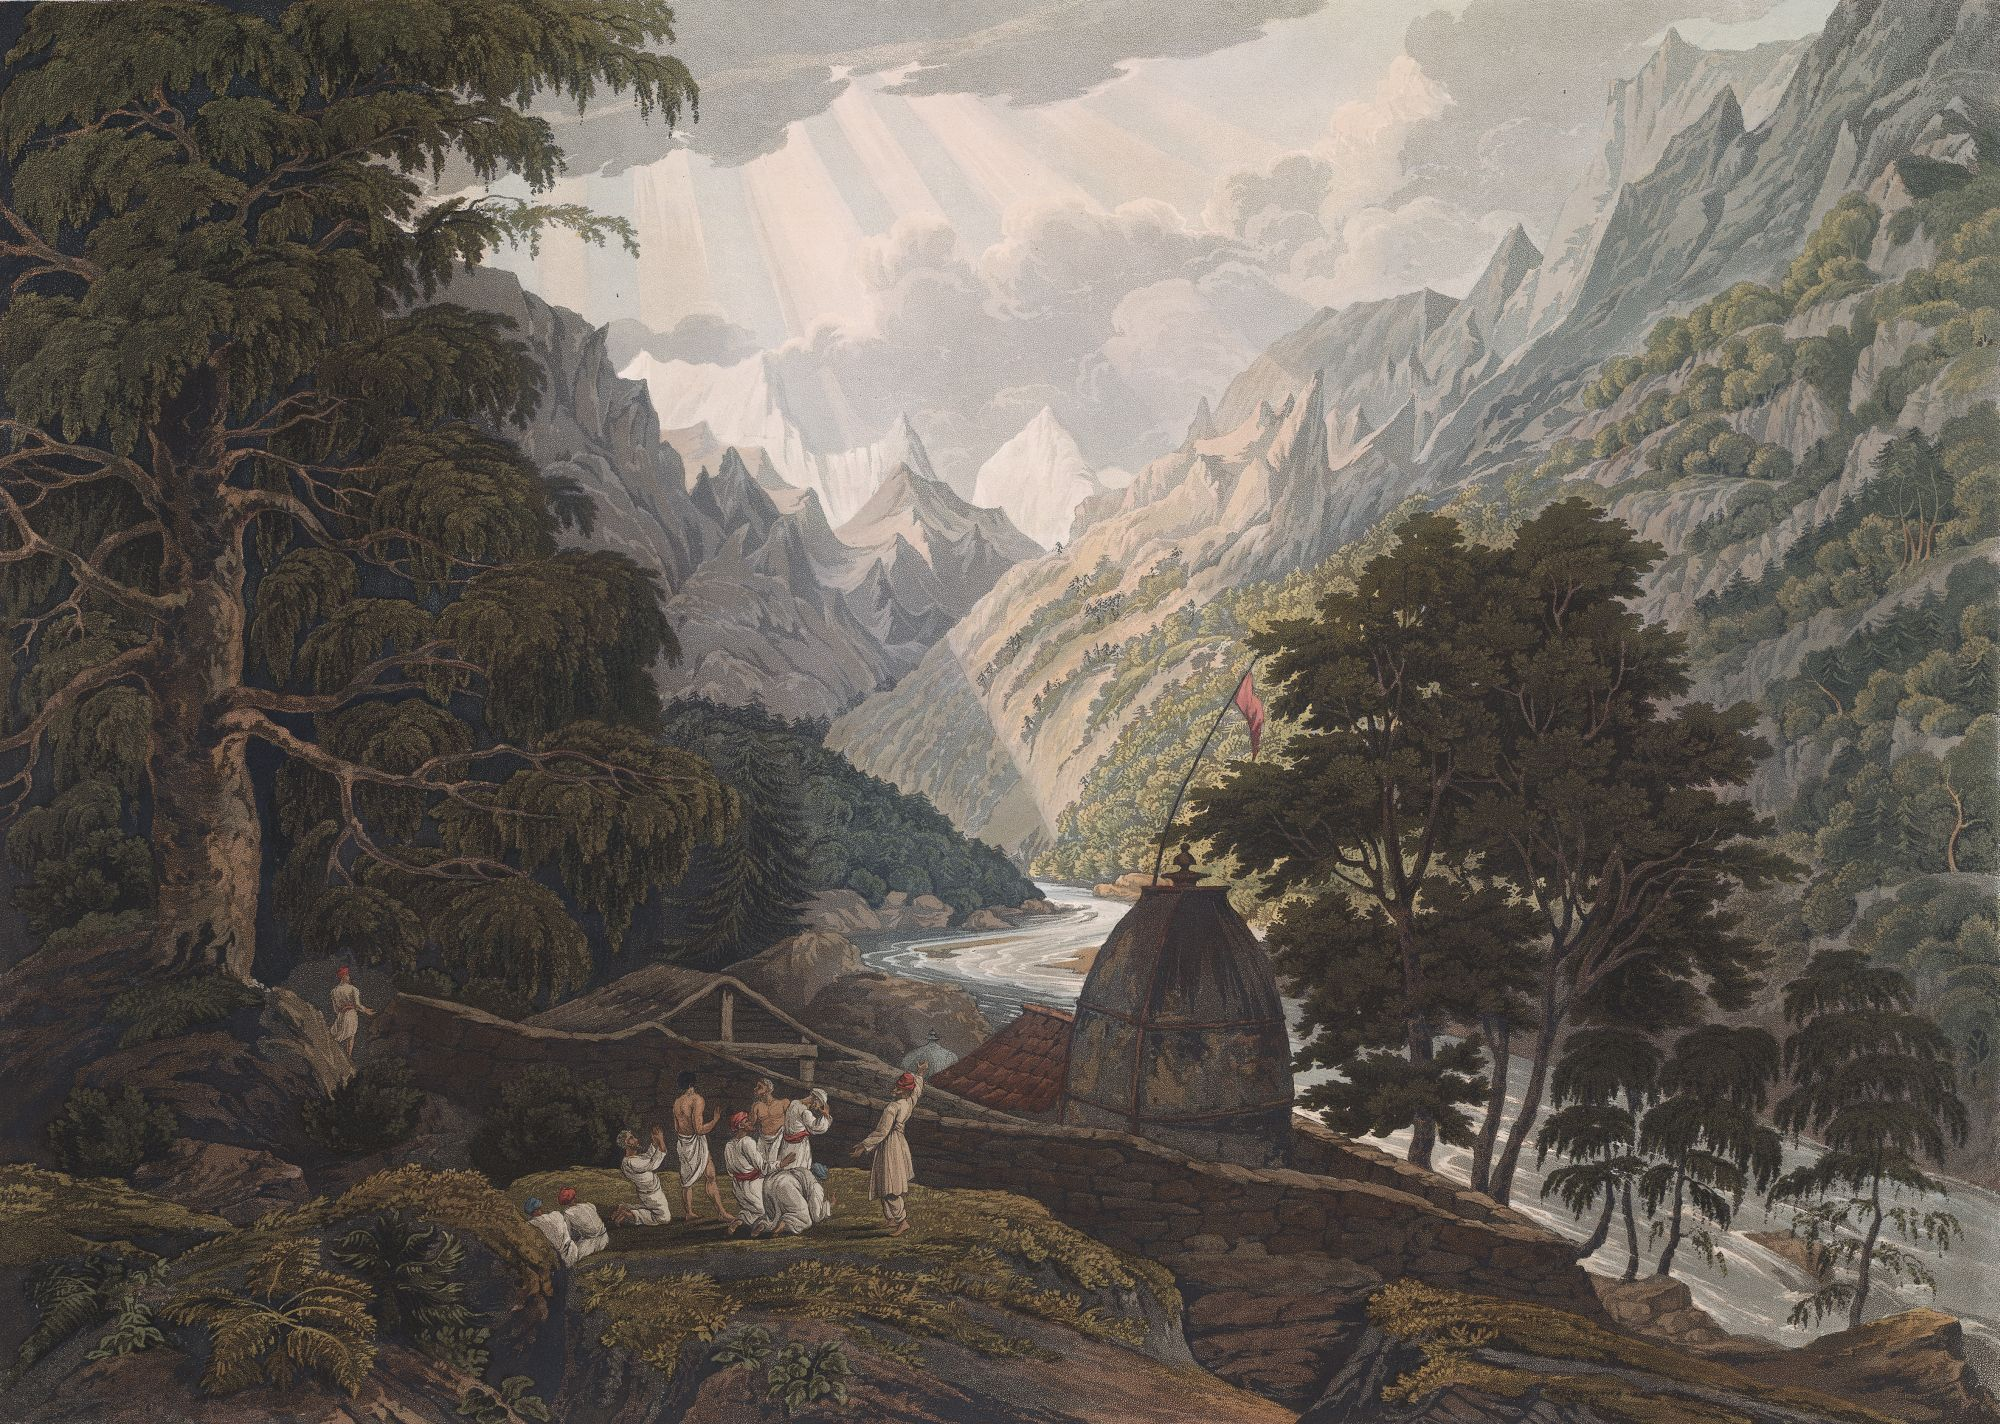 Gangotri, the Holy Shrine of Mahadeo, by Robert Havell & Son after James Baillie Fraser.